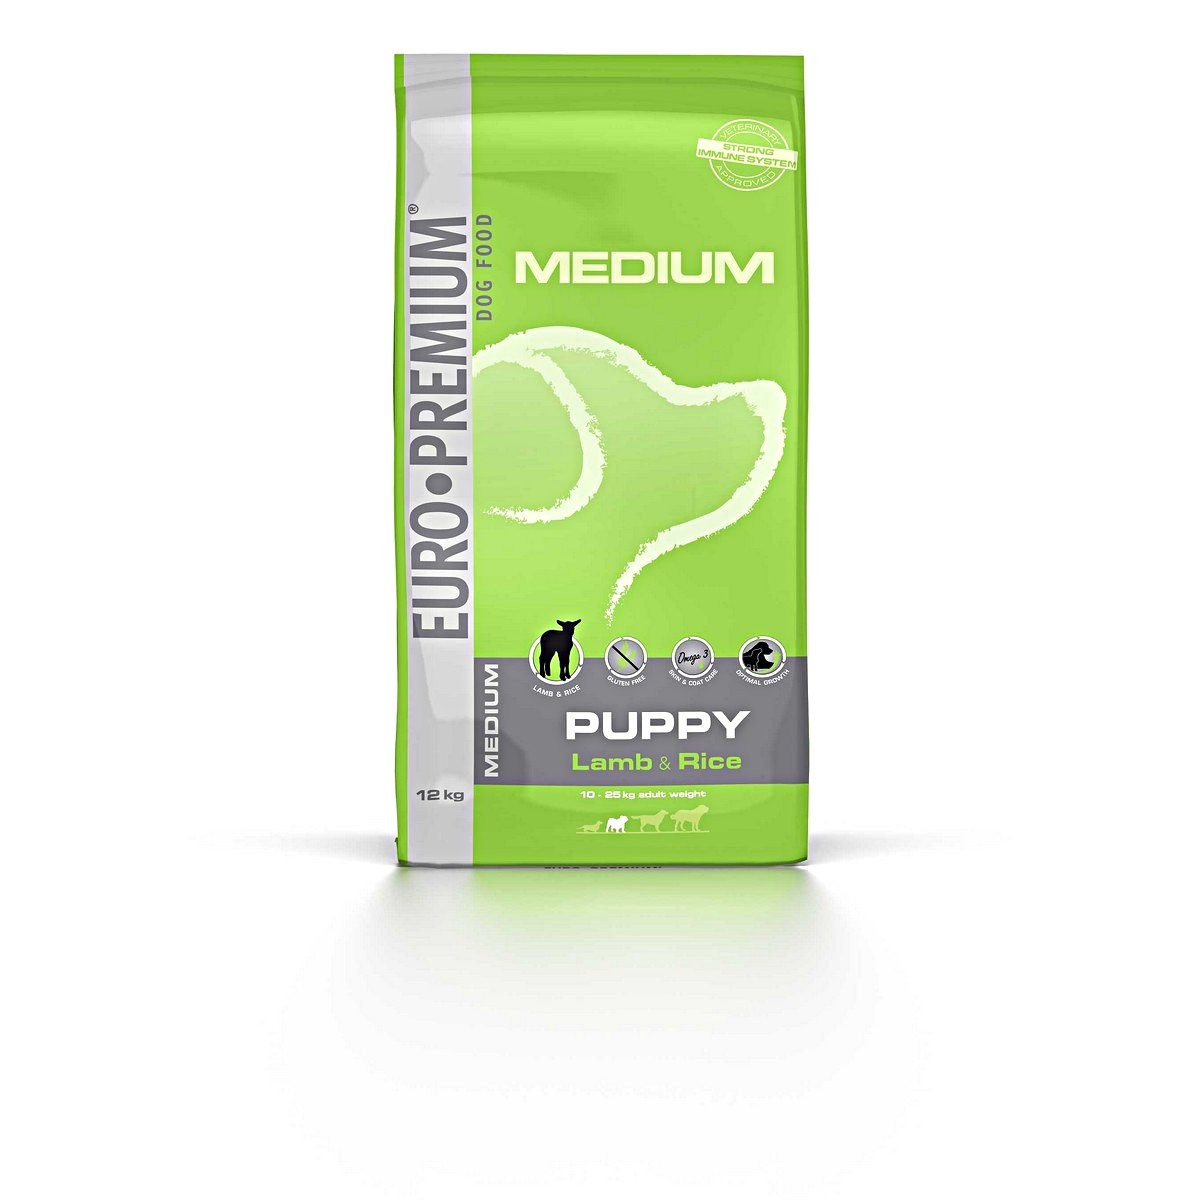 Euro Premium Medium Puppy Lamb & Rice hondenvoer